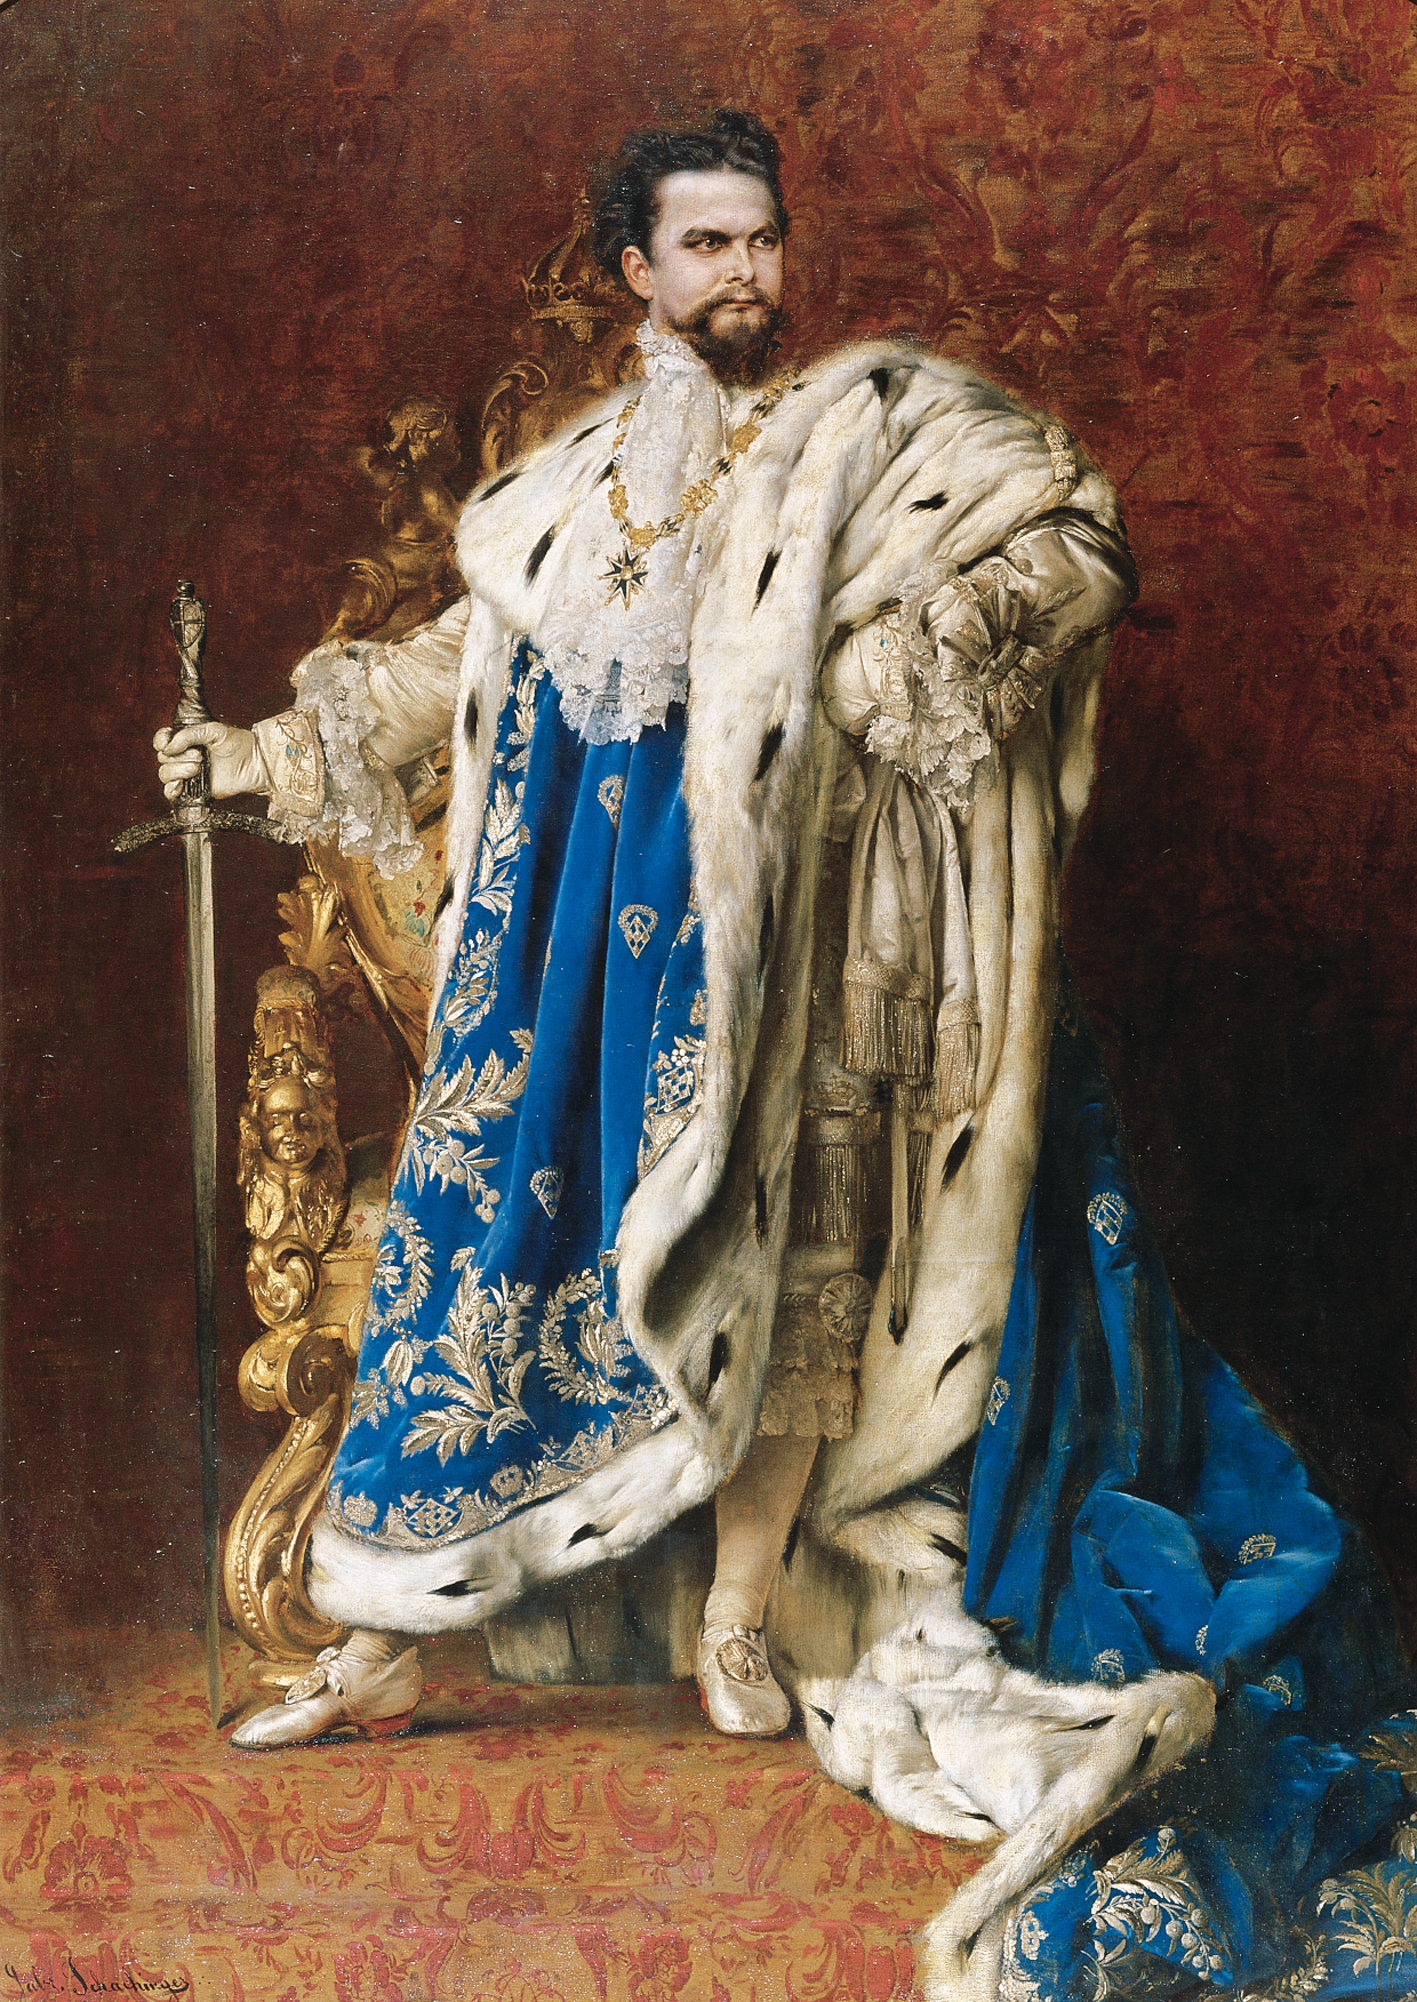 https://i0.wp.com/upload.wikimedia.org/wikipedia/commons/3/35/Ludwig_II_portrait_by_Gabriel_Schachinger.jpg